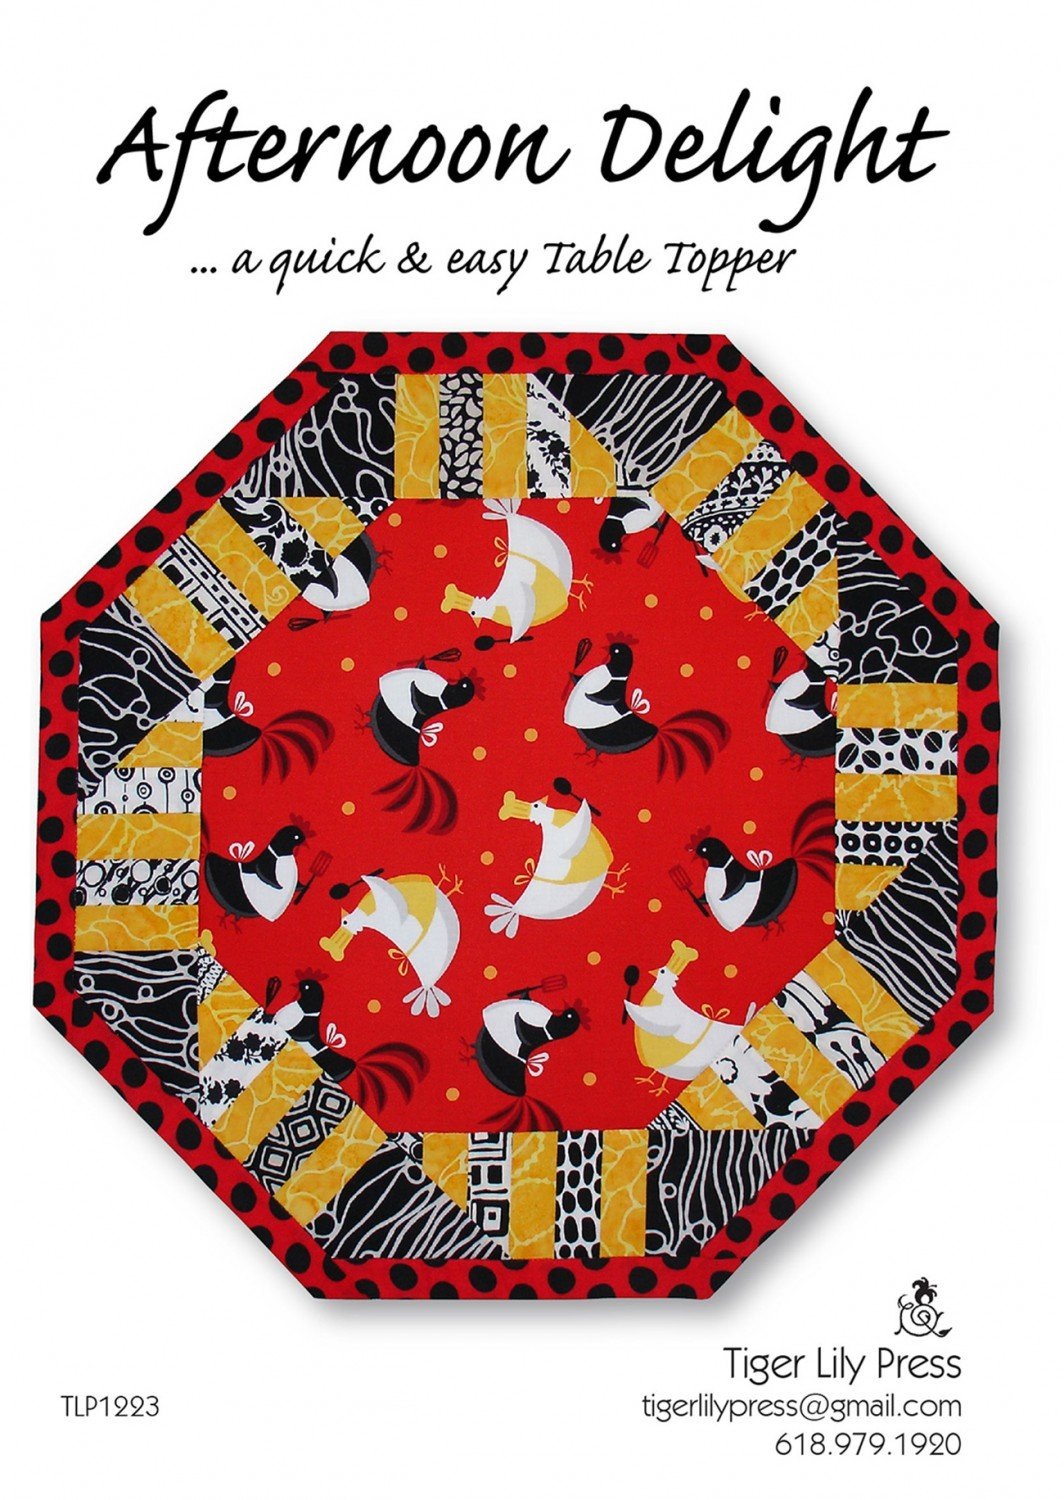 Afternoon Delight Table Topper pattern by Nicole Chambers Kaya / Tiger Lily